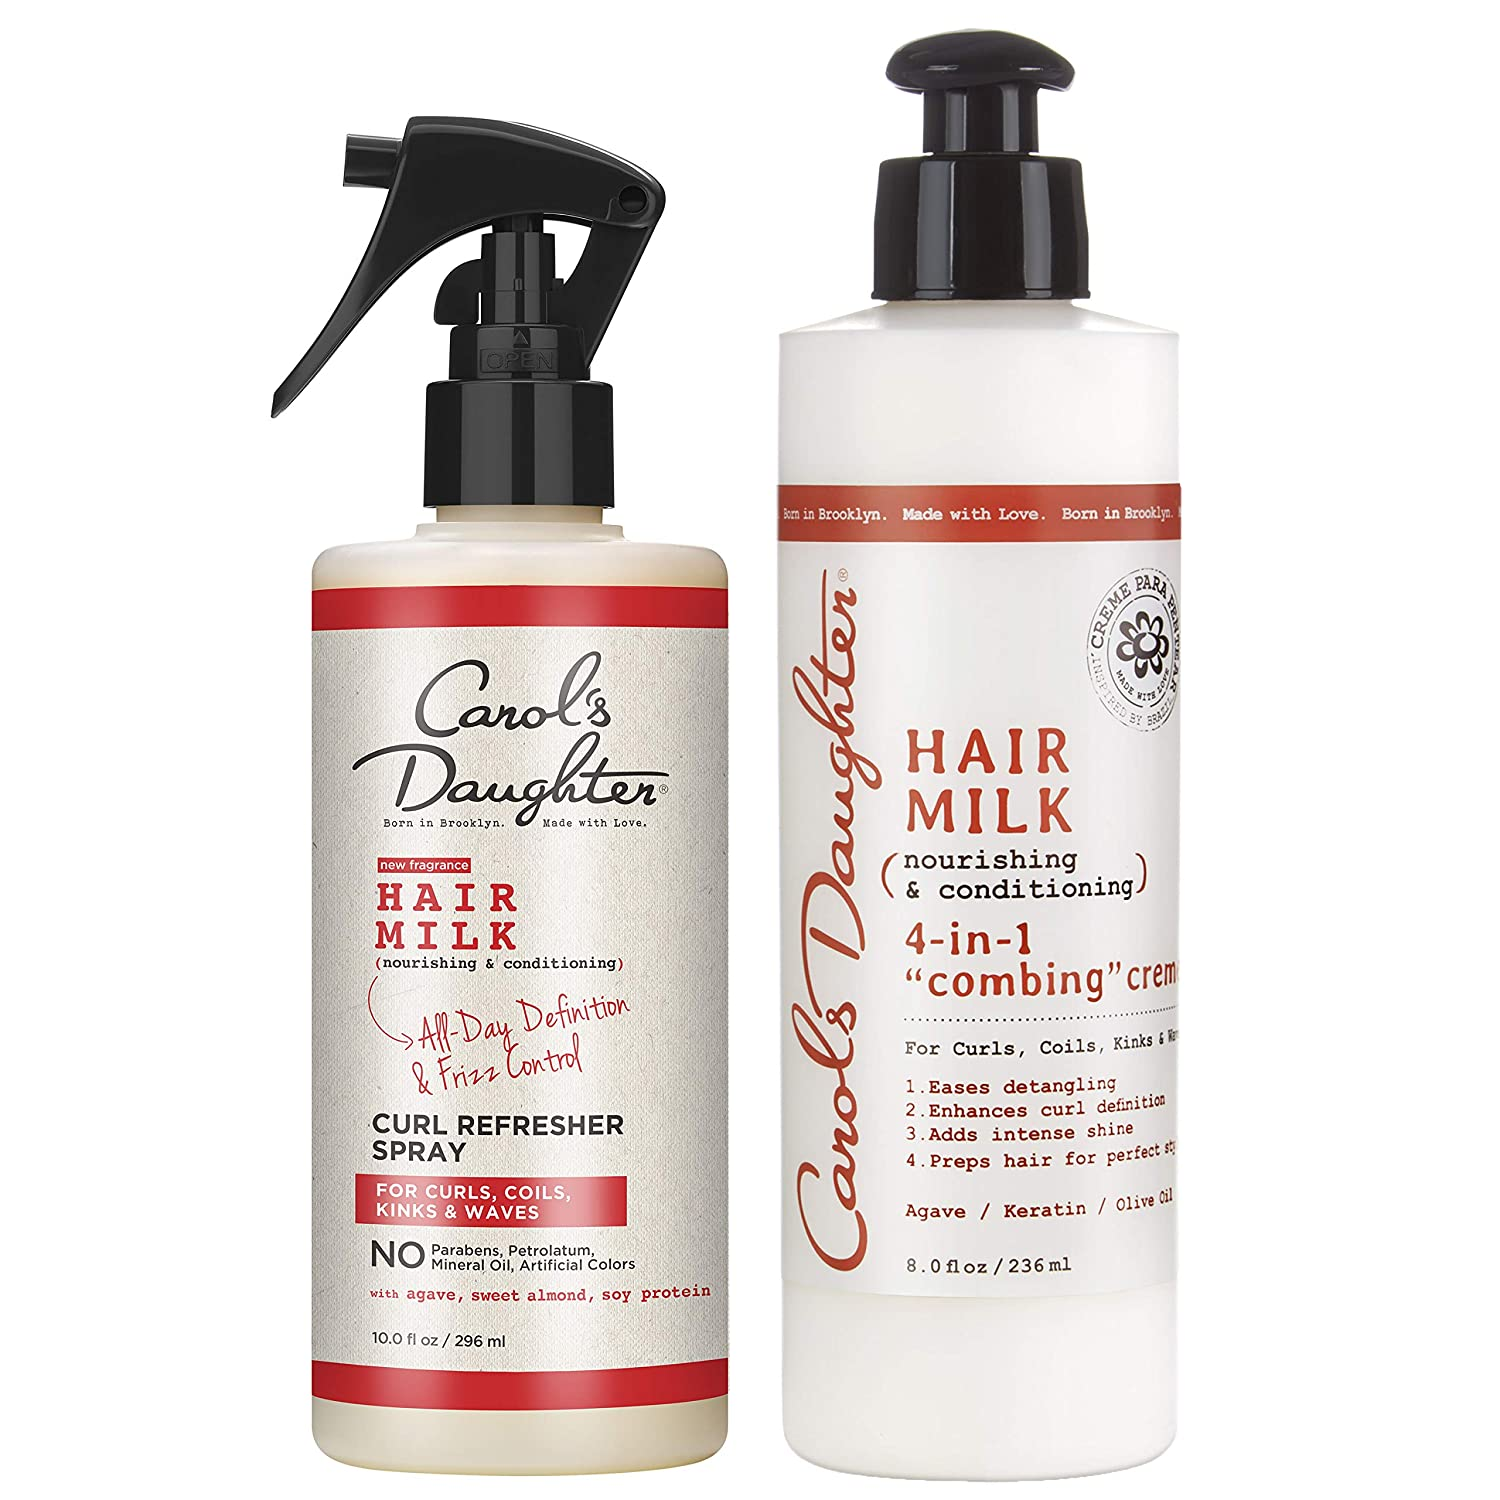 Curly Hair Products Gift Set by Carol's Daughter, Hair Milk Refresher Spray and 4 in 1 Combing Crème Hair Detangler, For Curls, Coils, Kinks, and Waves, with Agave Nectar : Beauty